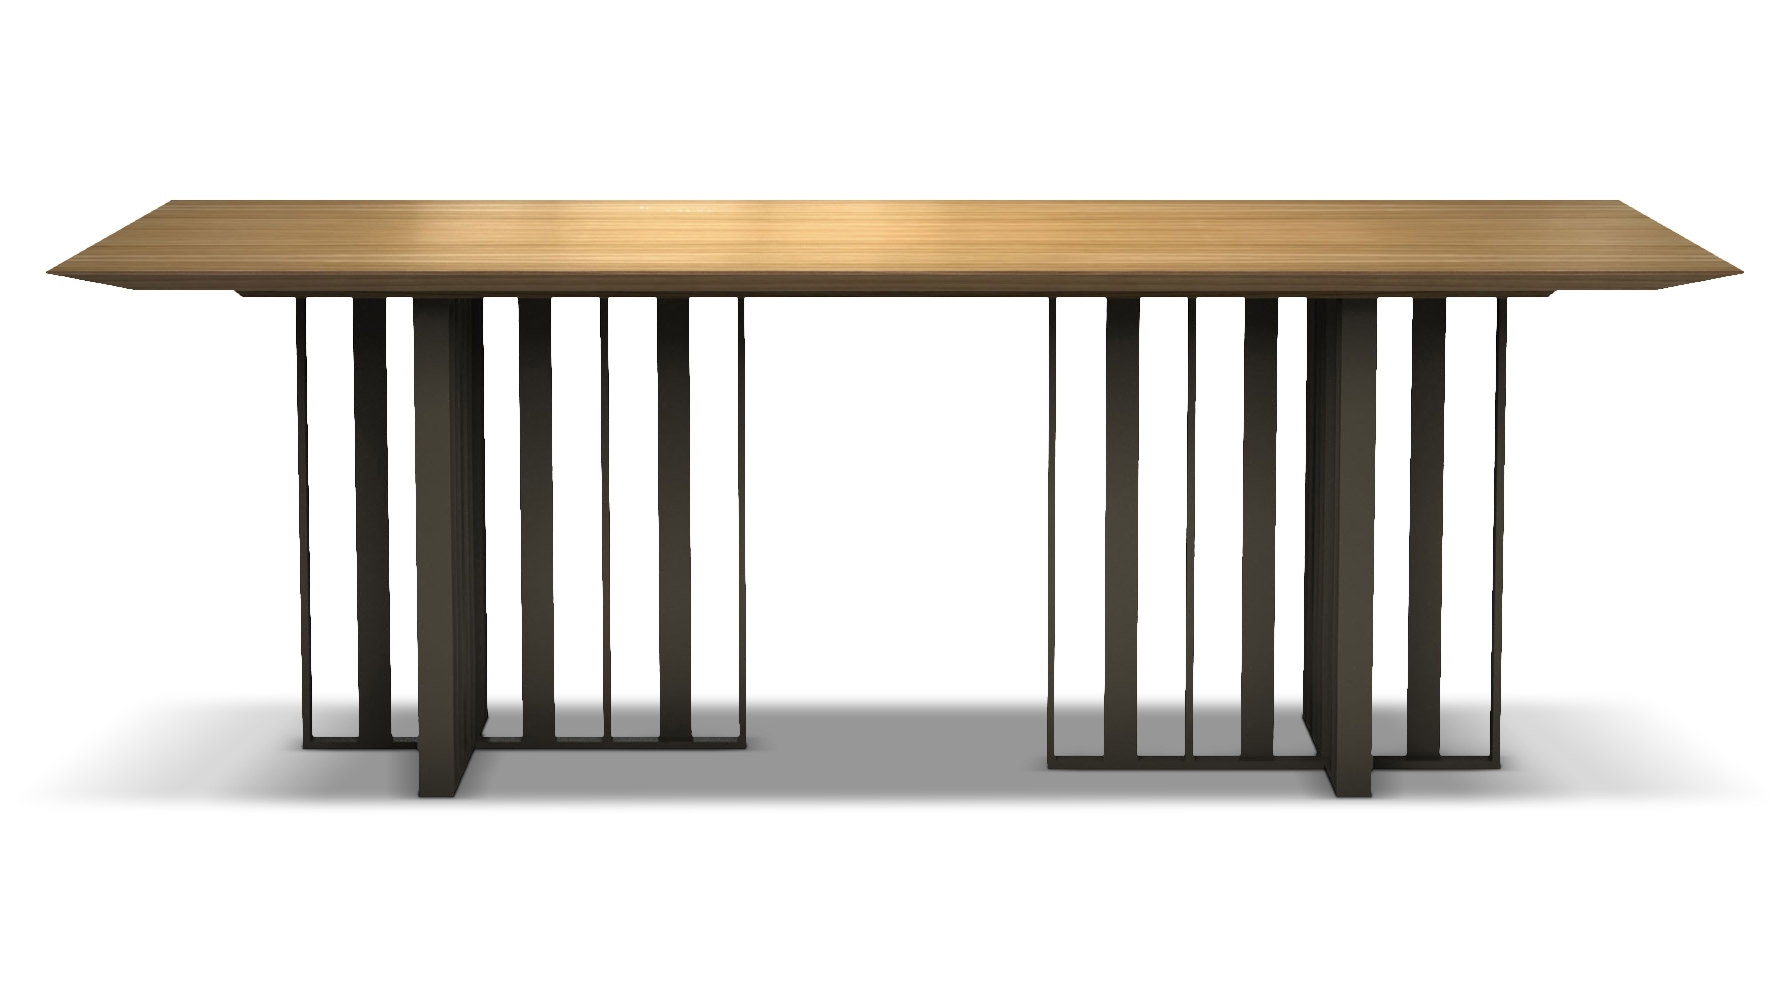 Saida 87 Inch Wood And Aluminum Dining Table, Natural Oak On Bronze Within Current 87 Inch Dining Tables (View 8 of 20)